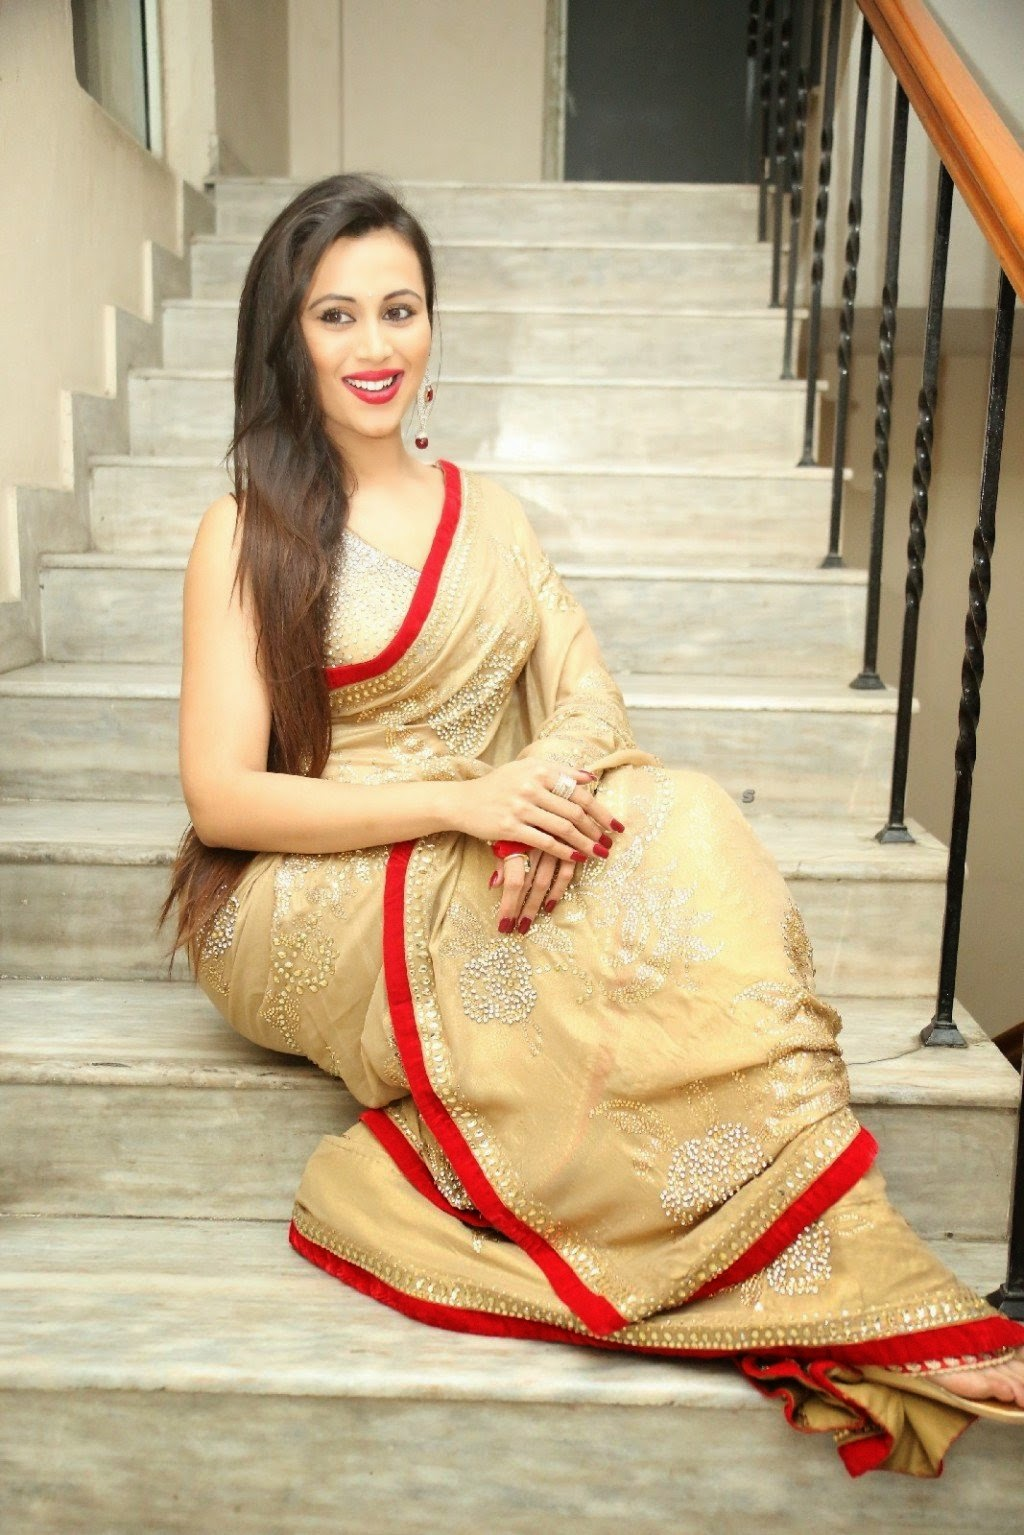 charlotte claire hot transparent saree pics